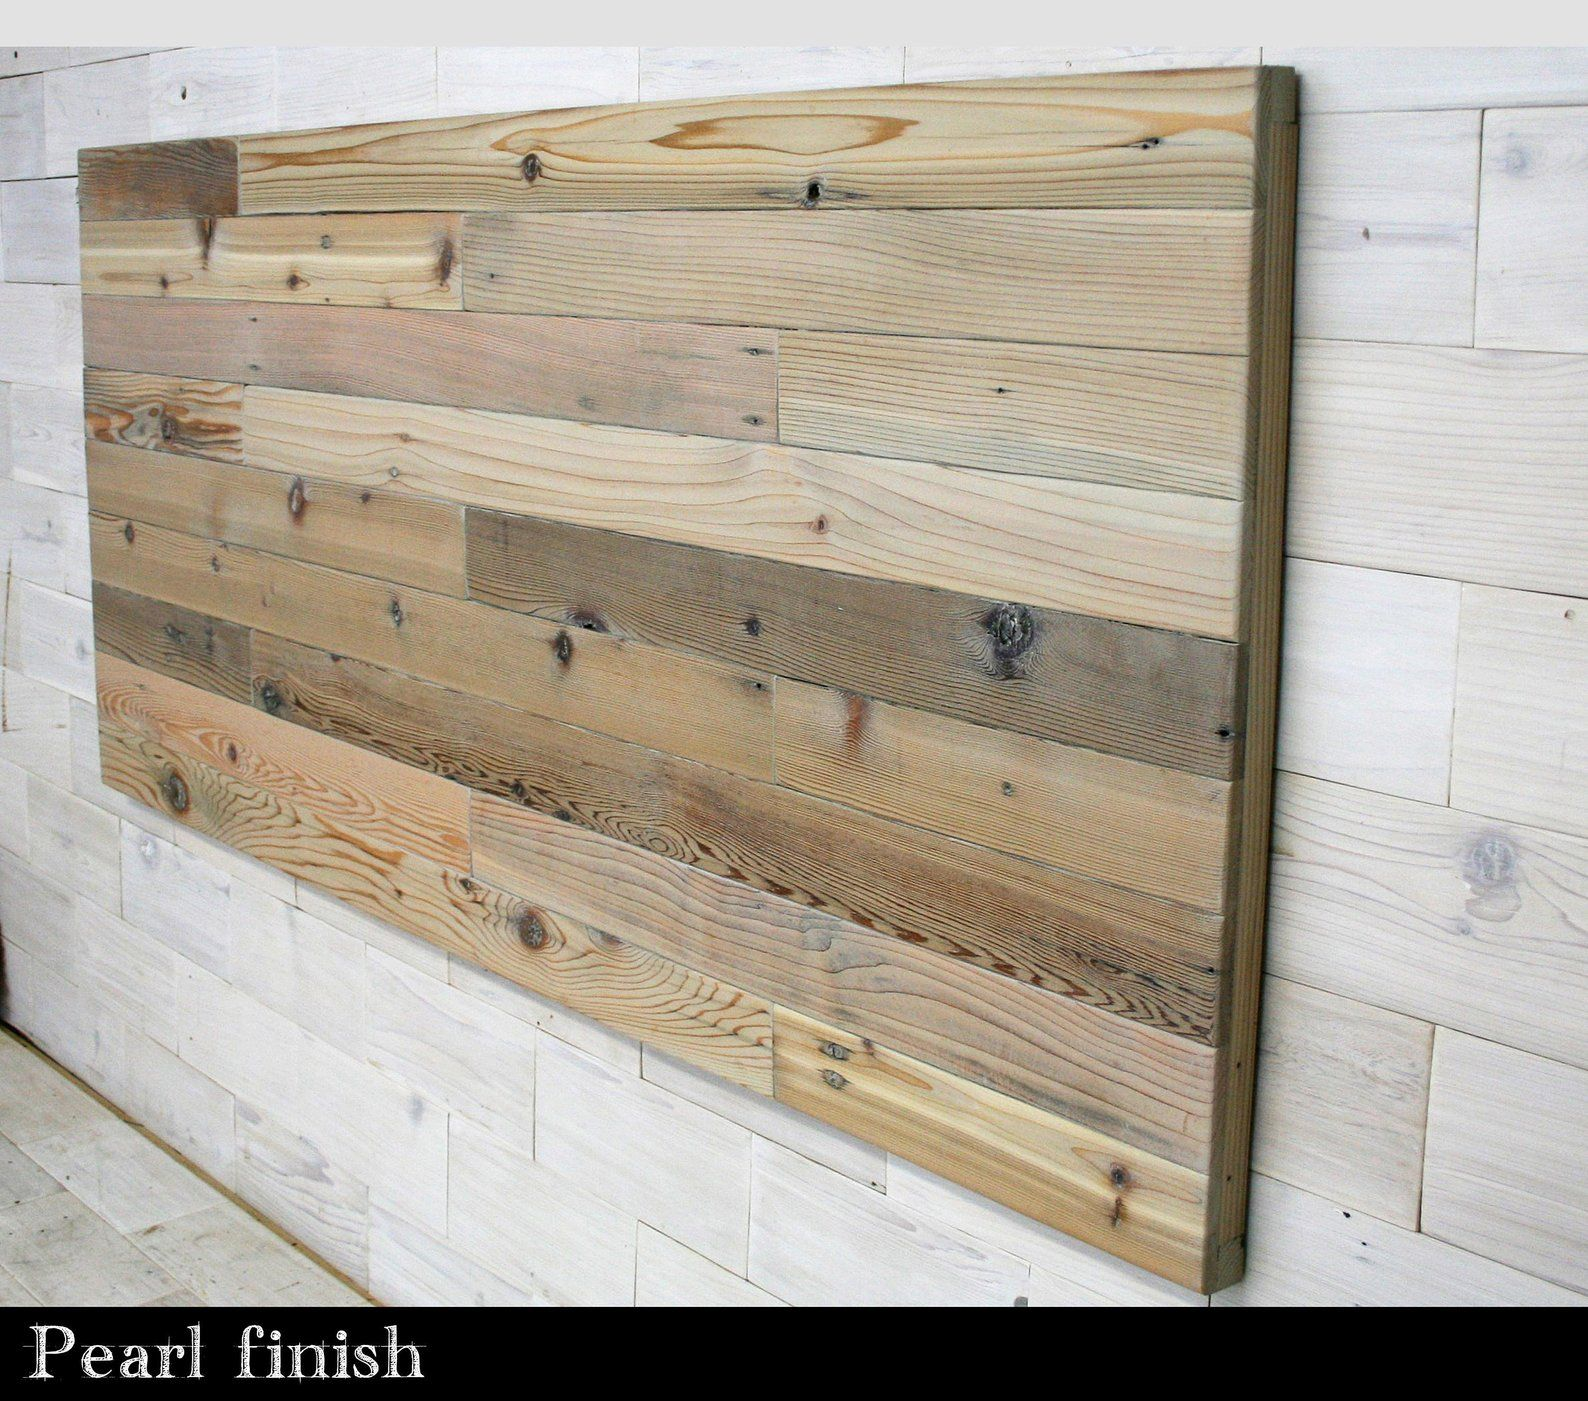 30 Ingenious Wooden Headboard Ideas For A Trendy Bedroom Eclectic Bedroom Bedroom Design Headboards For Beds